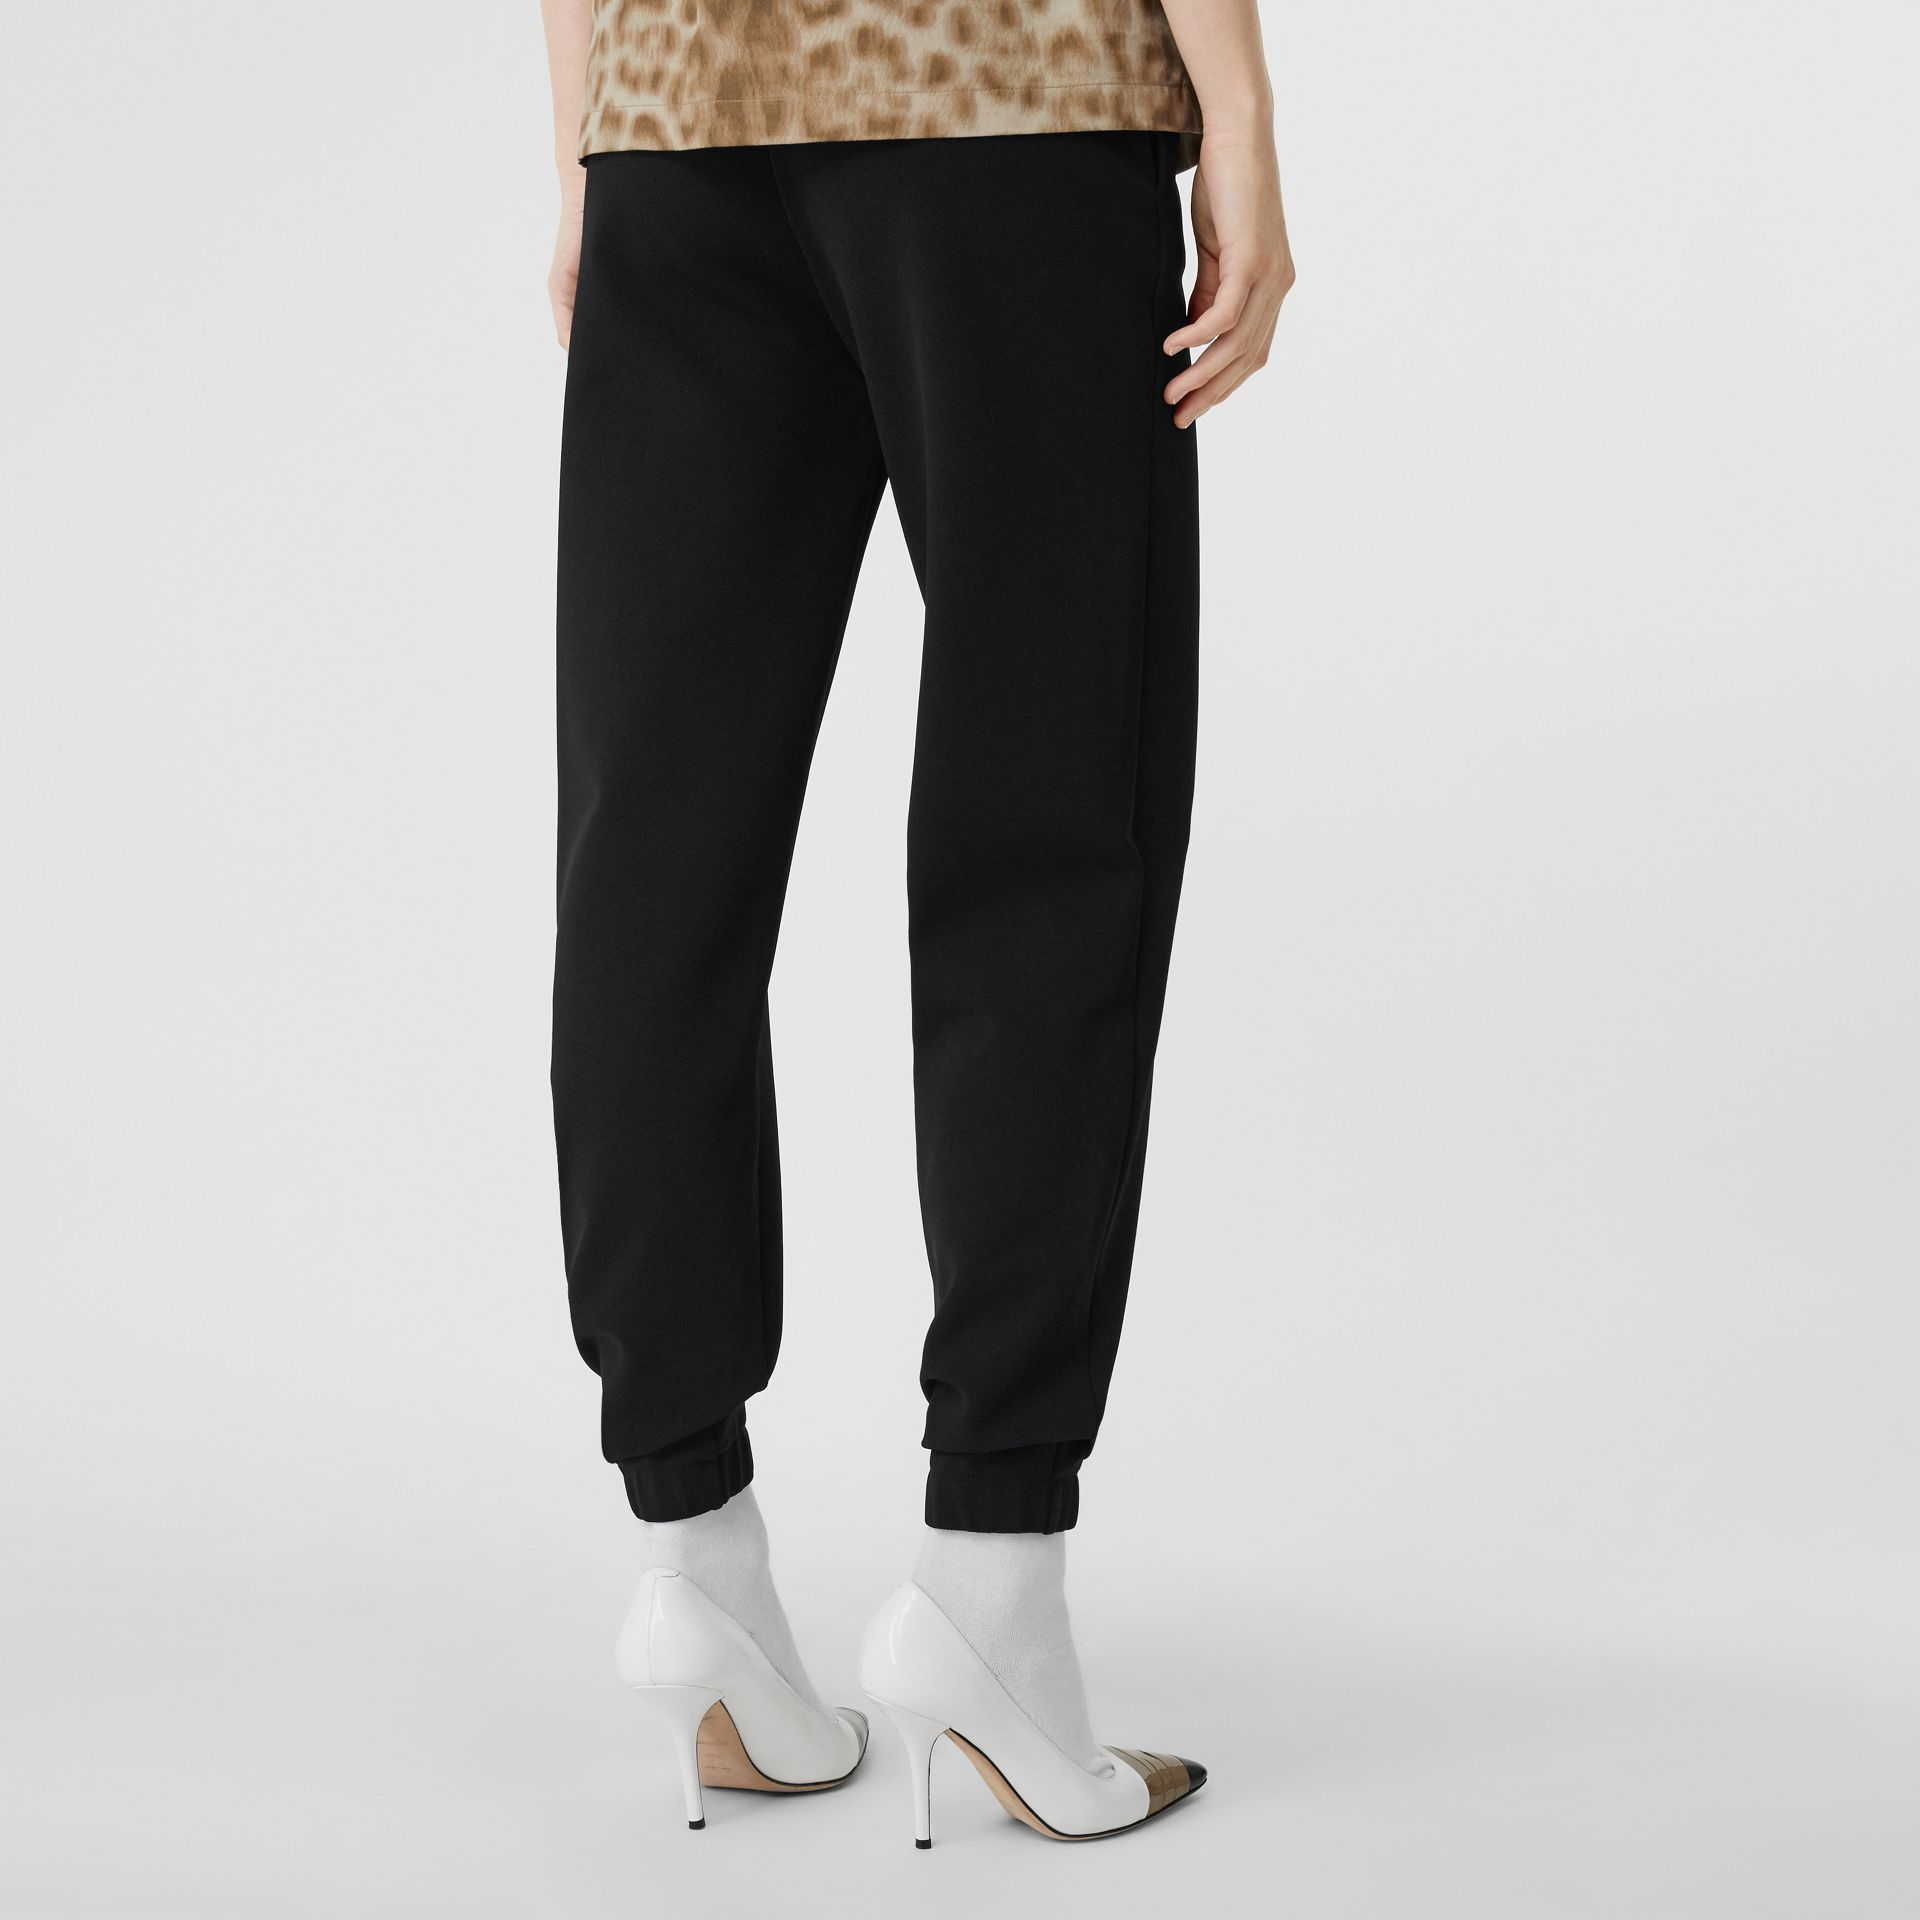 Pantalon de survêtement technique Monogram (Noir) - Femme | Burberry Canada - photo de la galerie 2